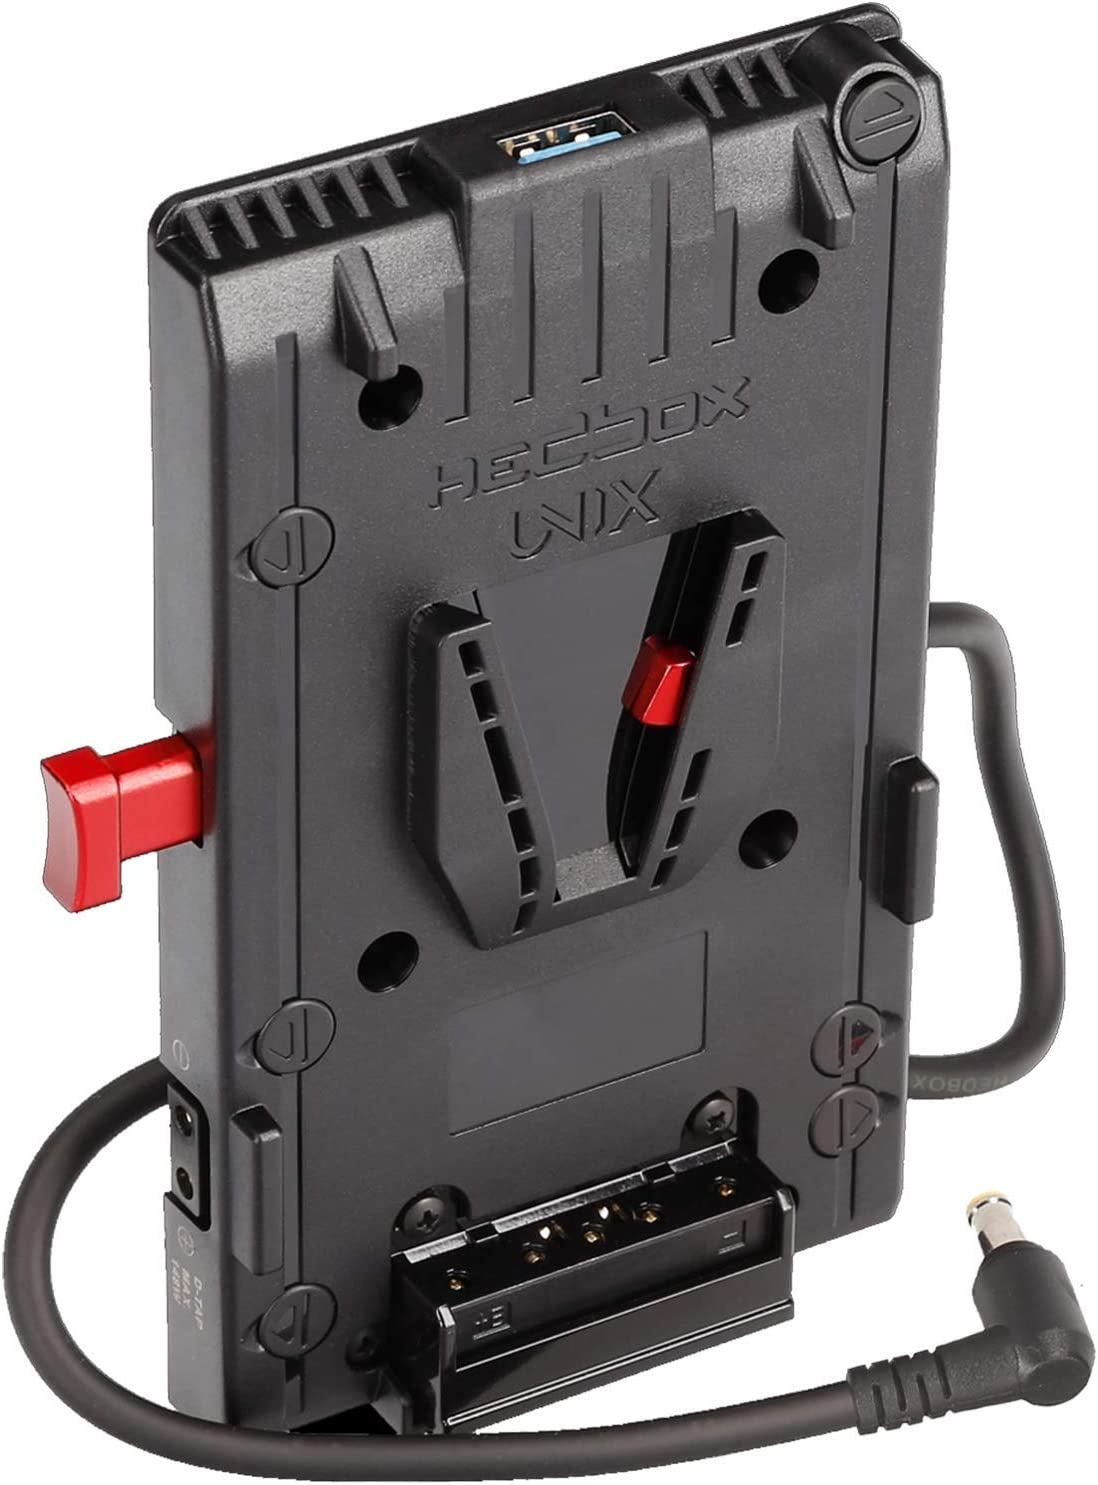 HEDBOX UNIX-SO - V-Mount Battery Adapter Plate, 3x D-Tap & USB, for Sony DV Camcorders, Power Out Cable - Sony DC Jack